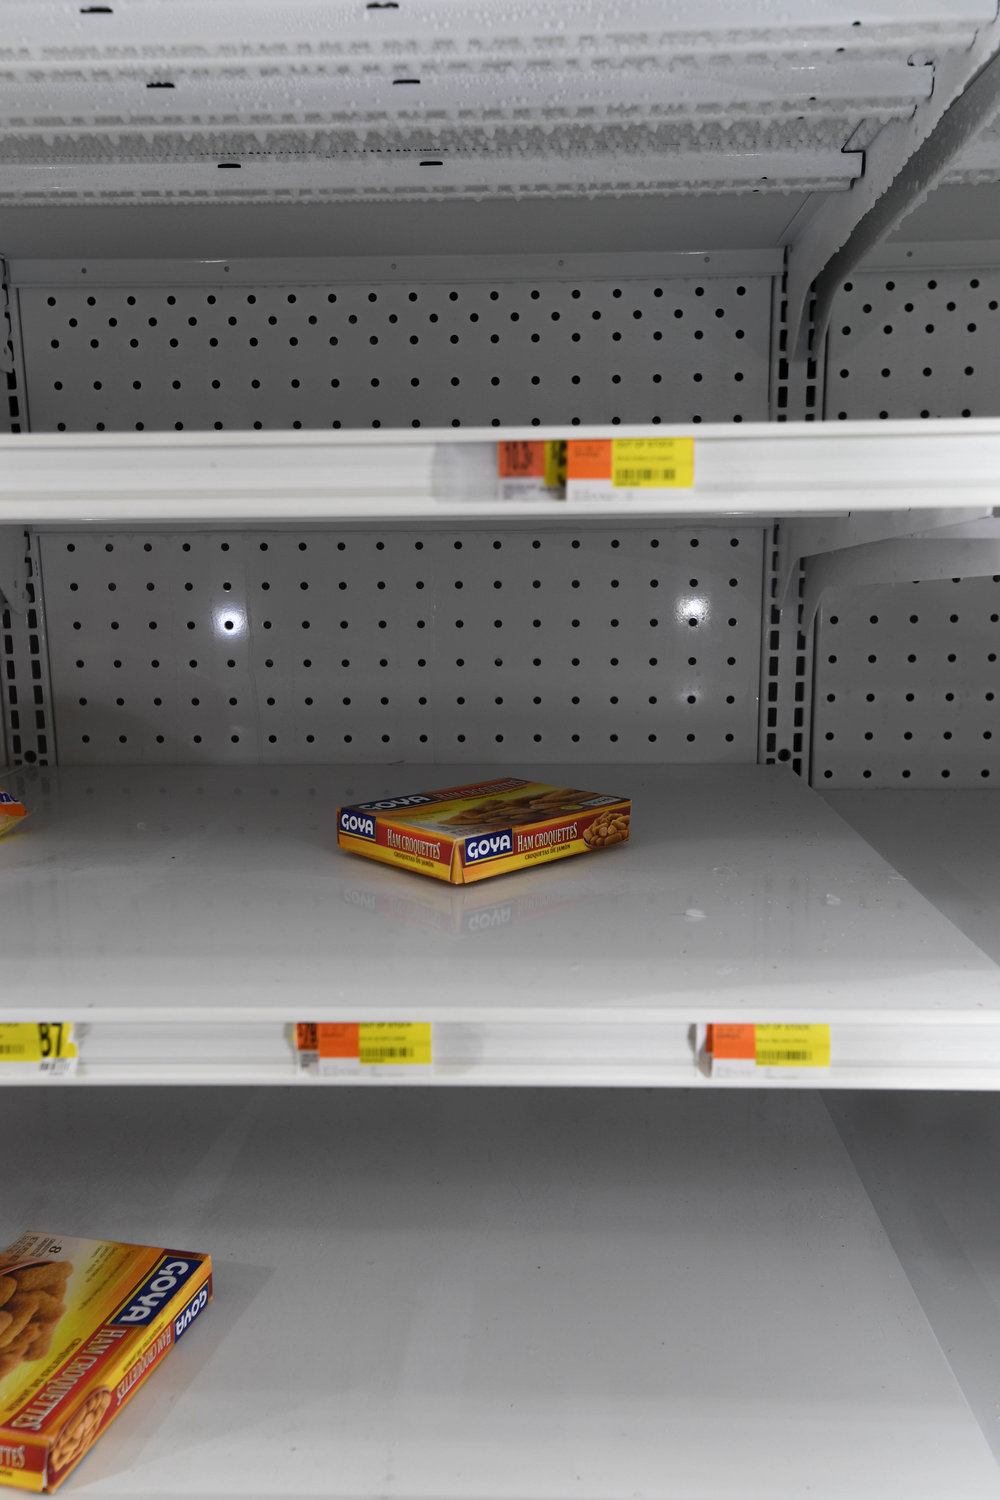 A freezer in Moca is nearly empty, with just three boxed of food left. Many grocery stores remain without power; the few running on generators cannot restock fast enough.